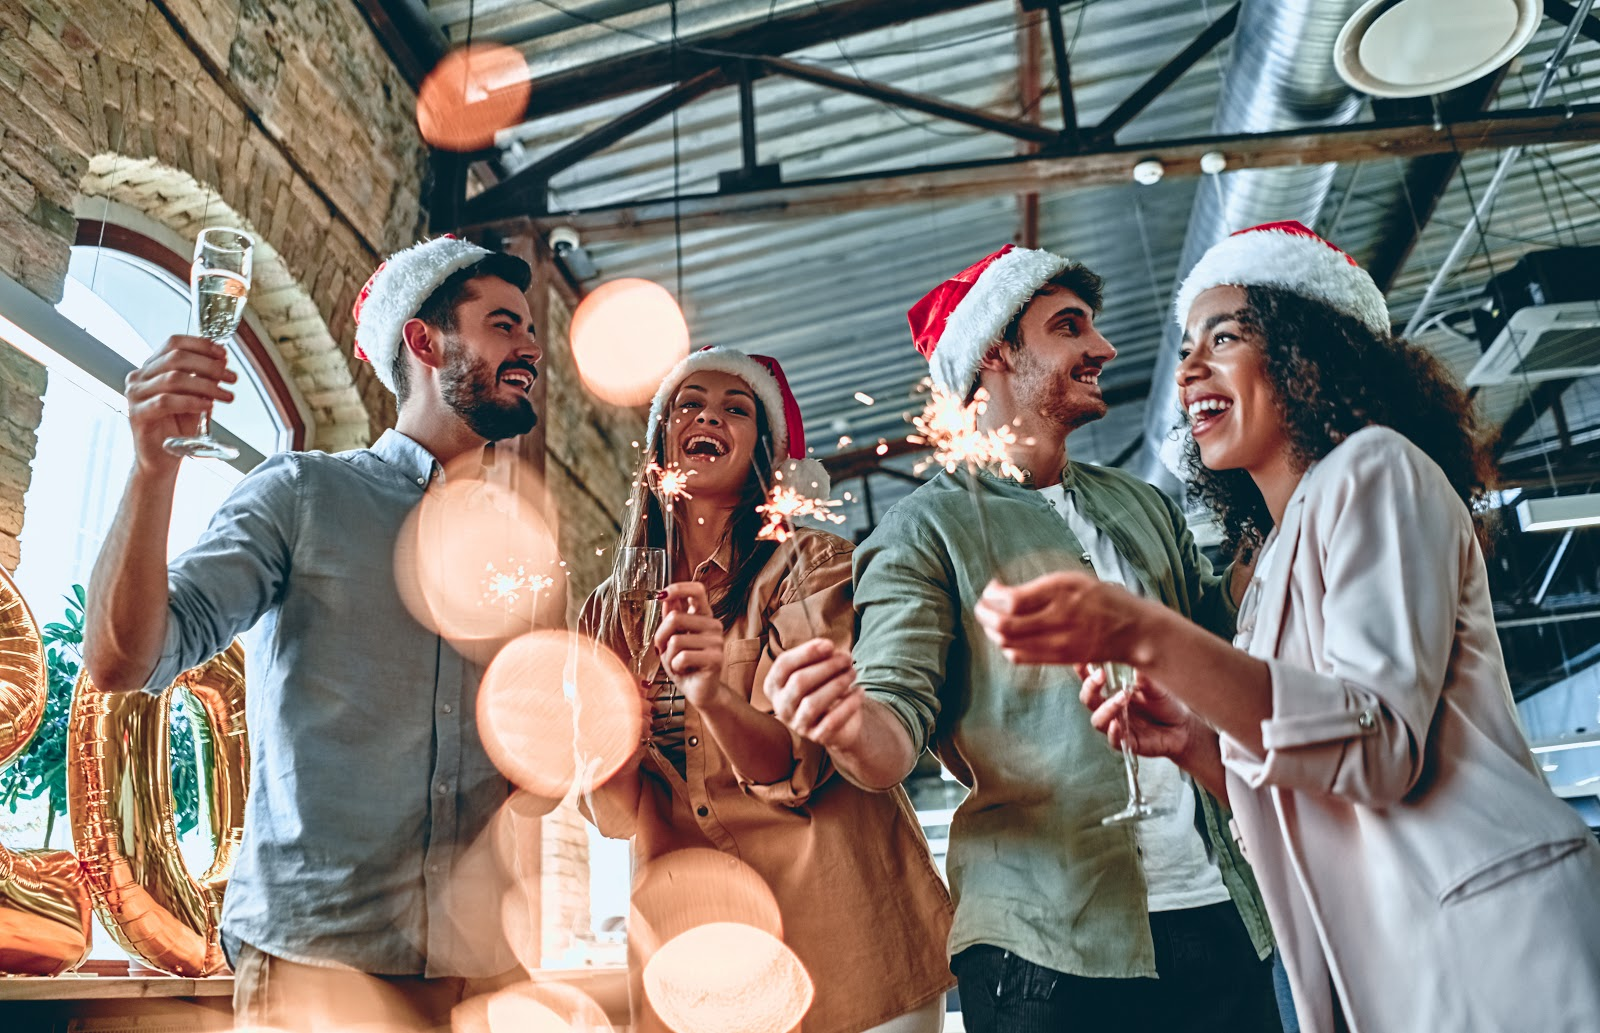 Christmas party ideas: Guests hold sparklers and champagne flutes at a holiday celebration